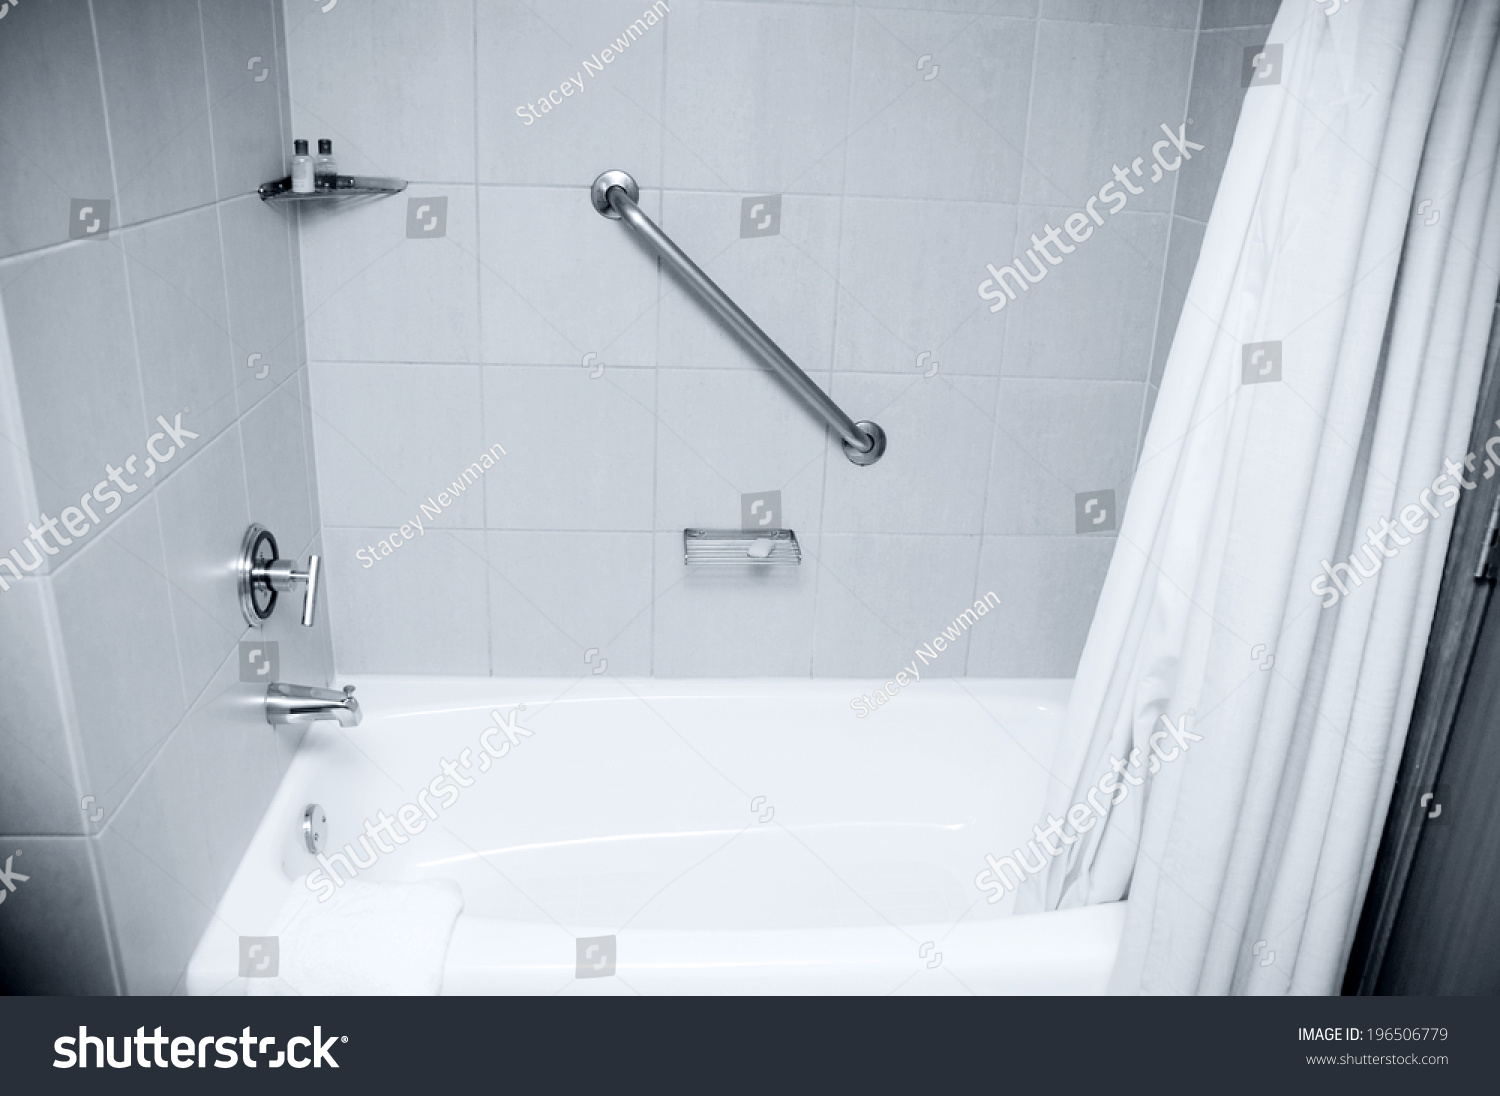 Bathtub Shower Handicapped Hand Rail Stock Photo 196506779 ...